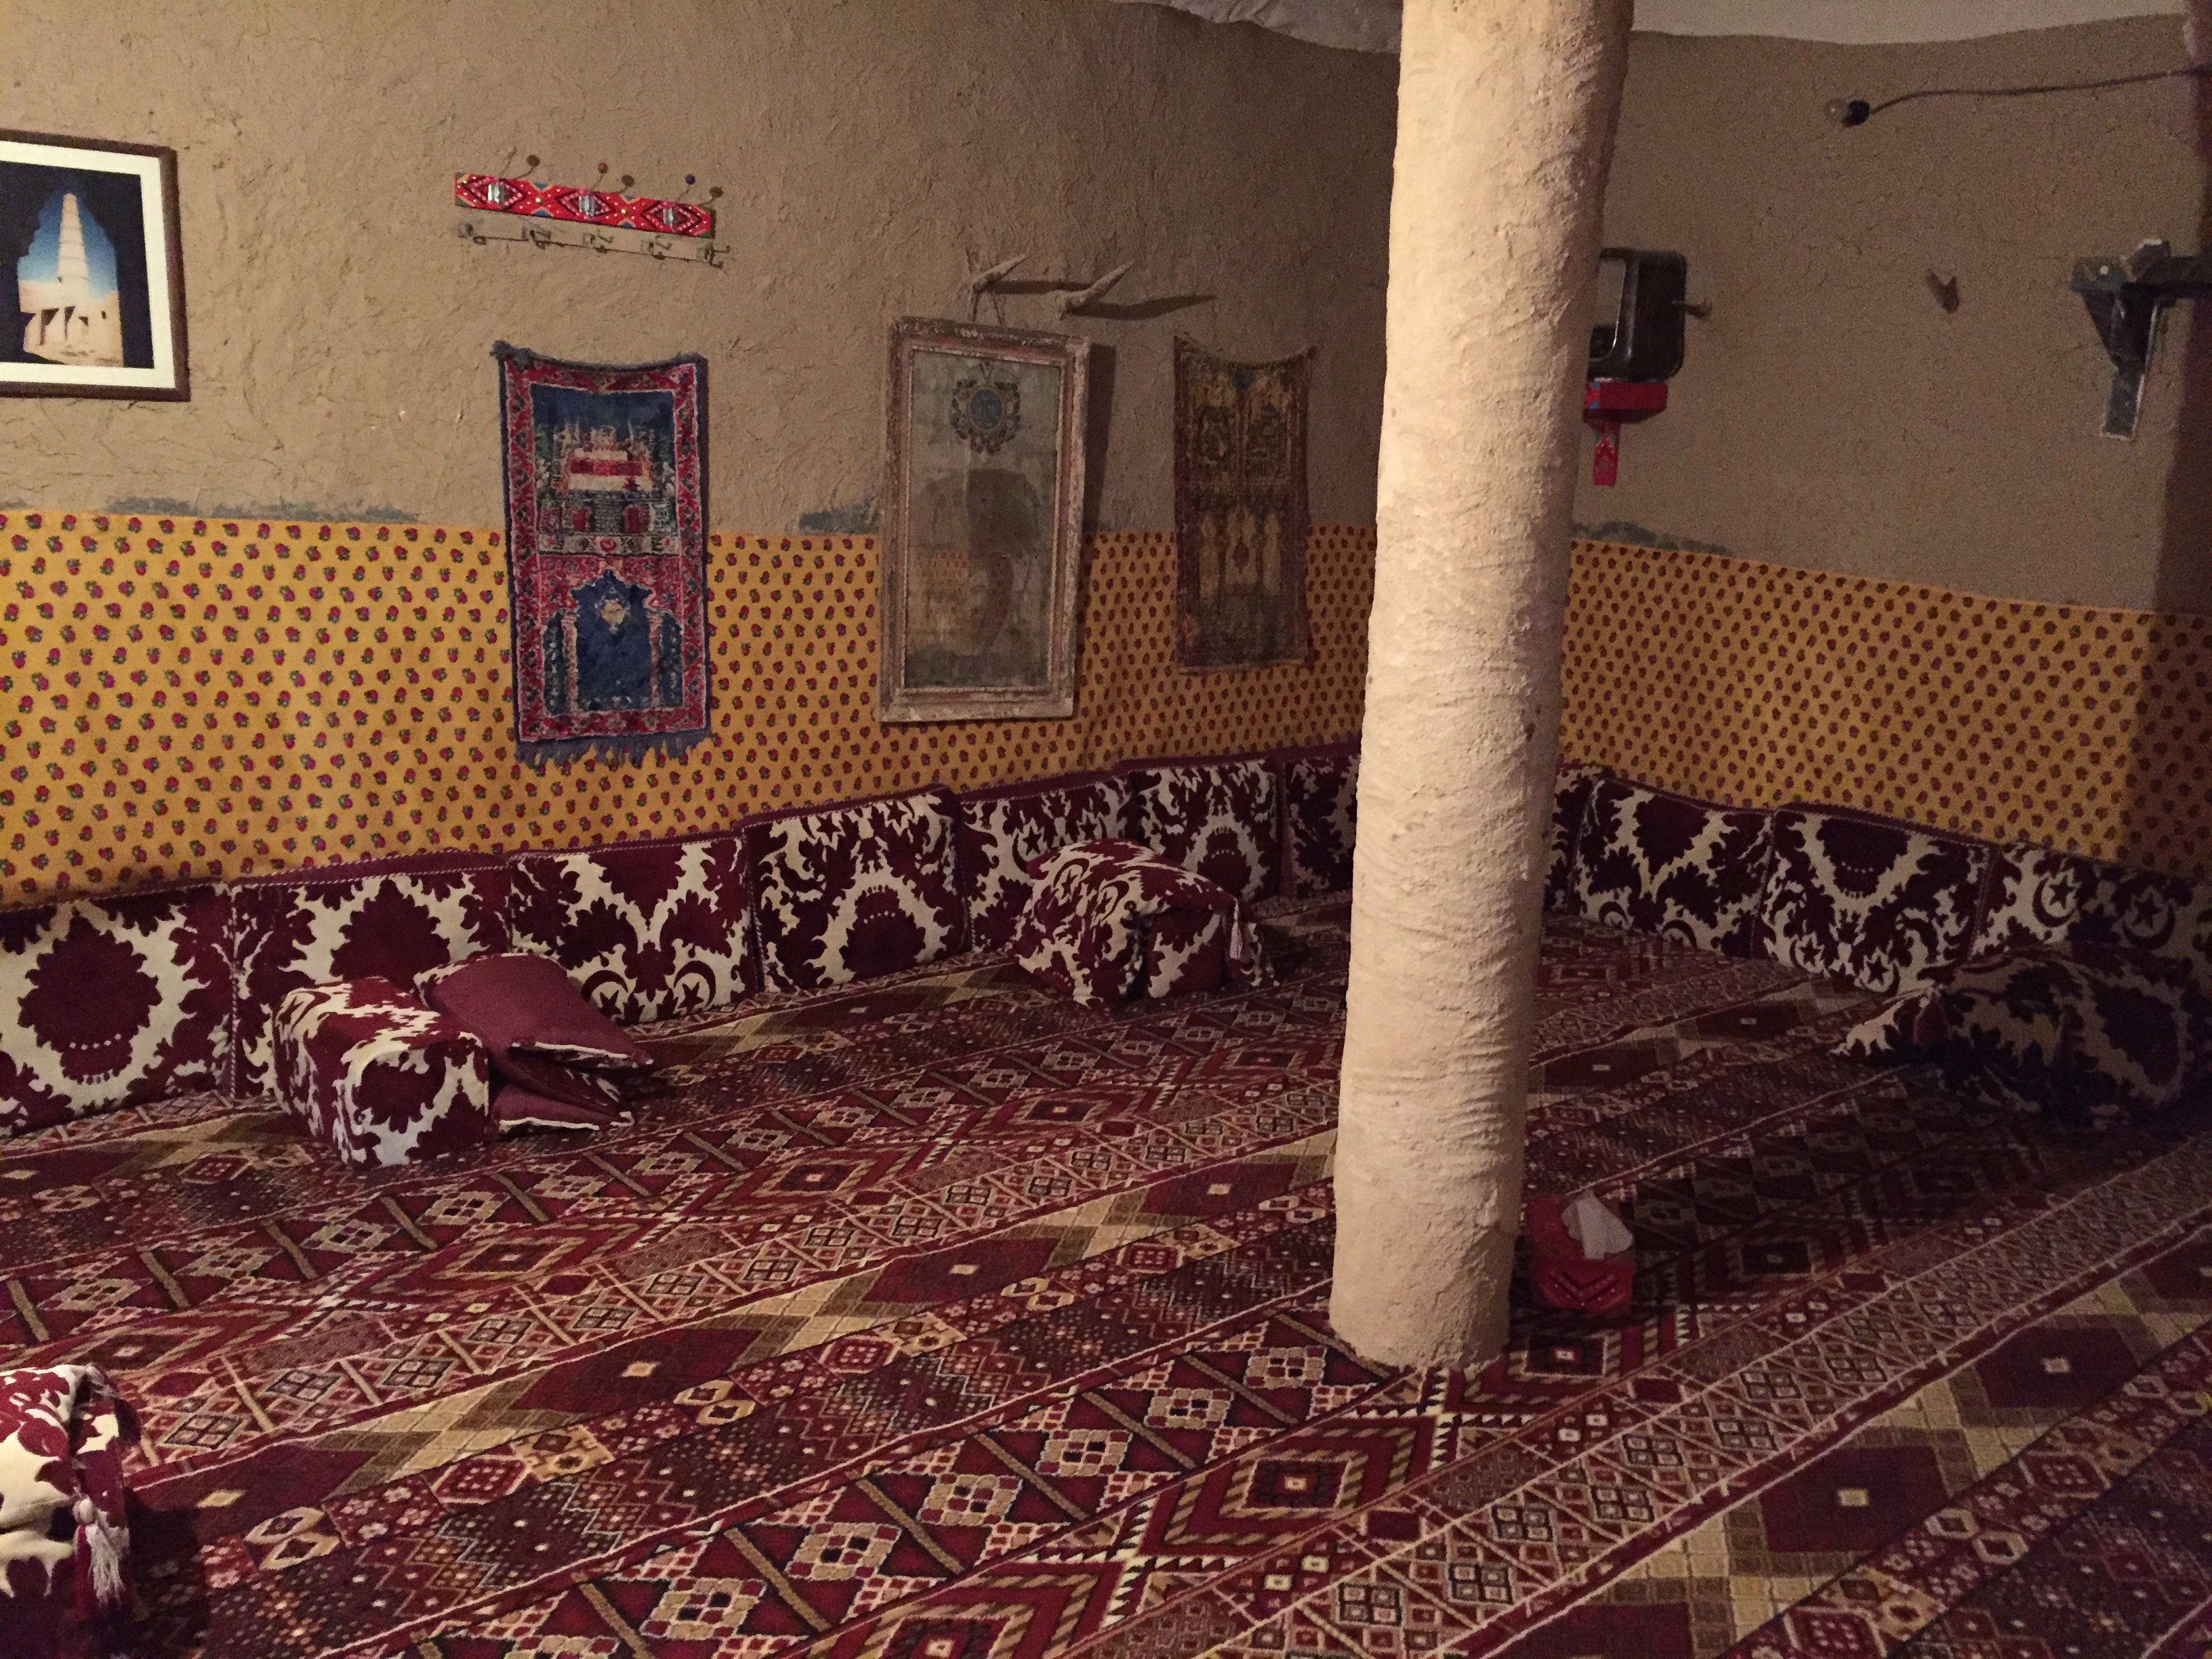 arabian style living room how to decorate a small with corner fireplace grandmother's house we go: touring traditional ...